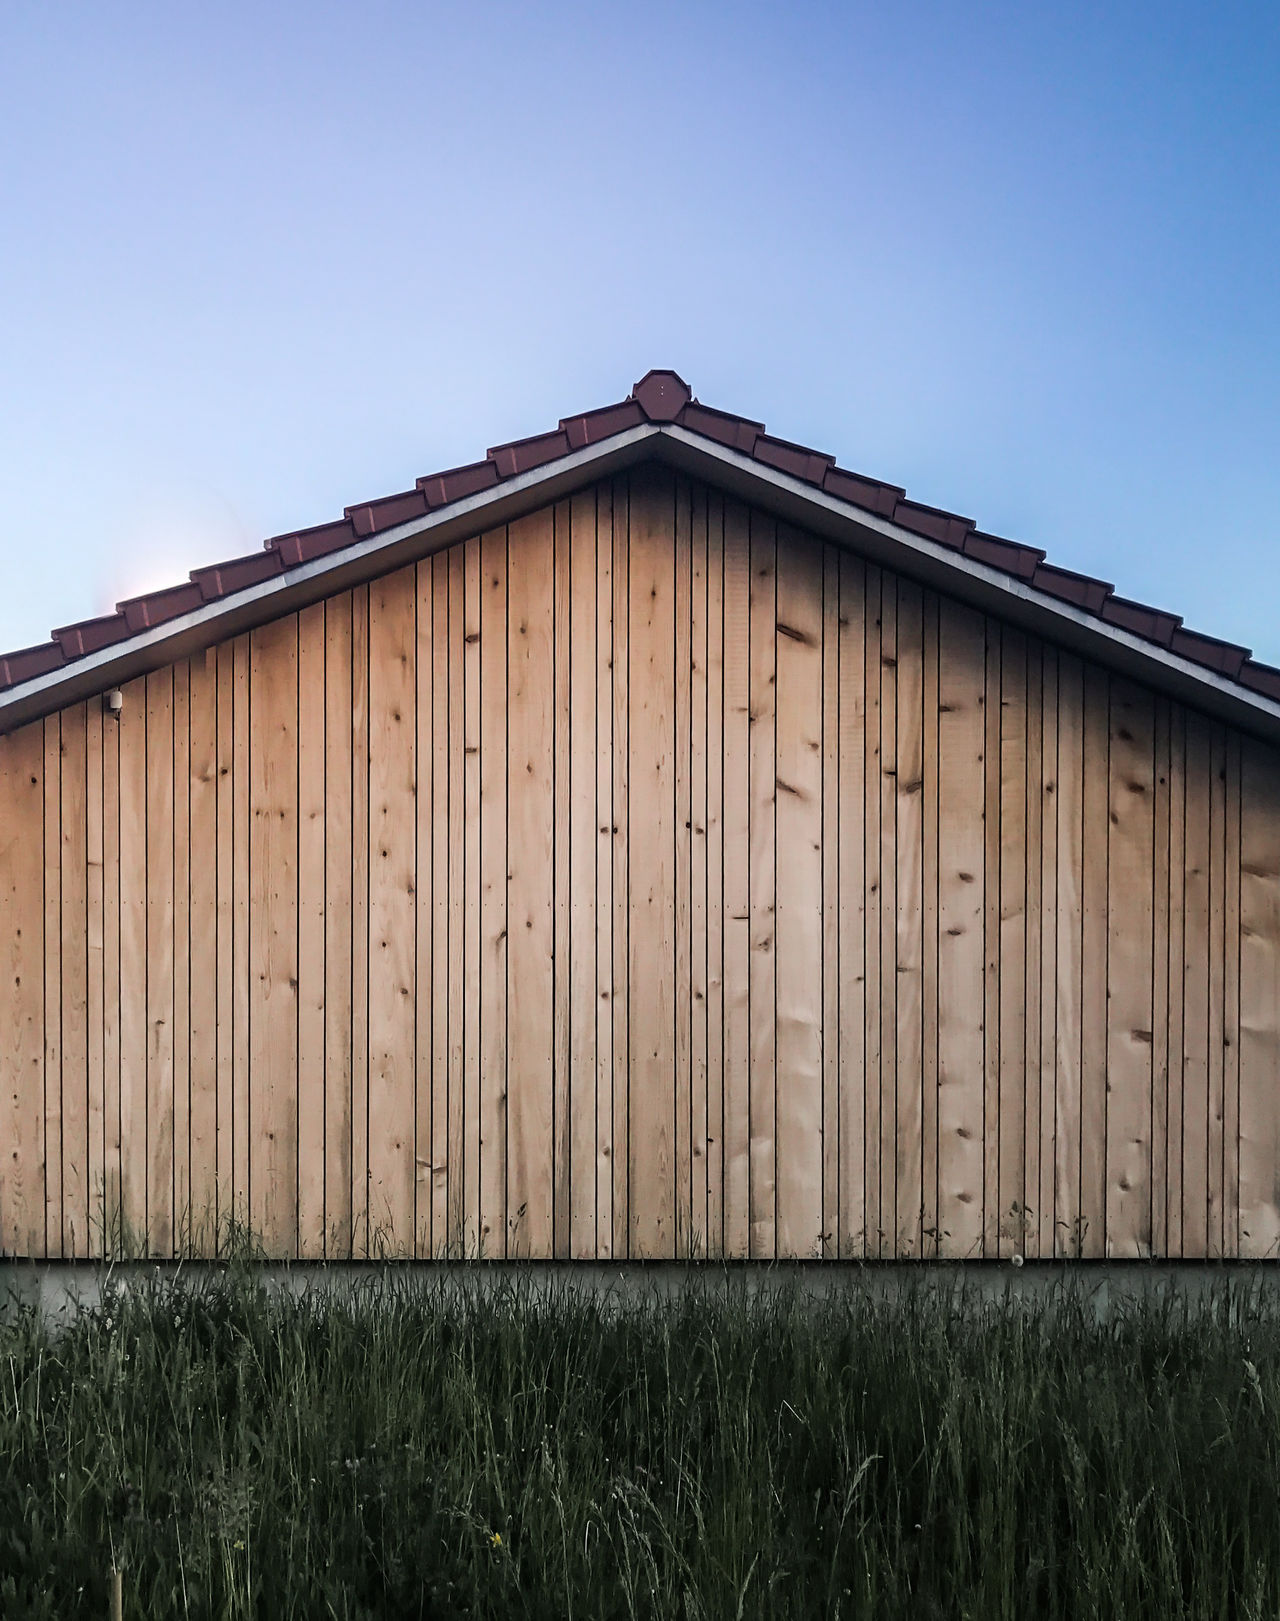 Architecture Barn Building Exterior Striped Clear Sky Country Countryside Evening Light Field Grass Stripes Pattern Hut Meadow Minimal Minimalism Minimalist Architecture Minimalobsession Nature Outdoors Pattern, Texture, Shape And Form Rural Rural Landscape Simplicity Symmetry Wood - Material